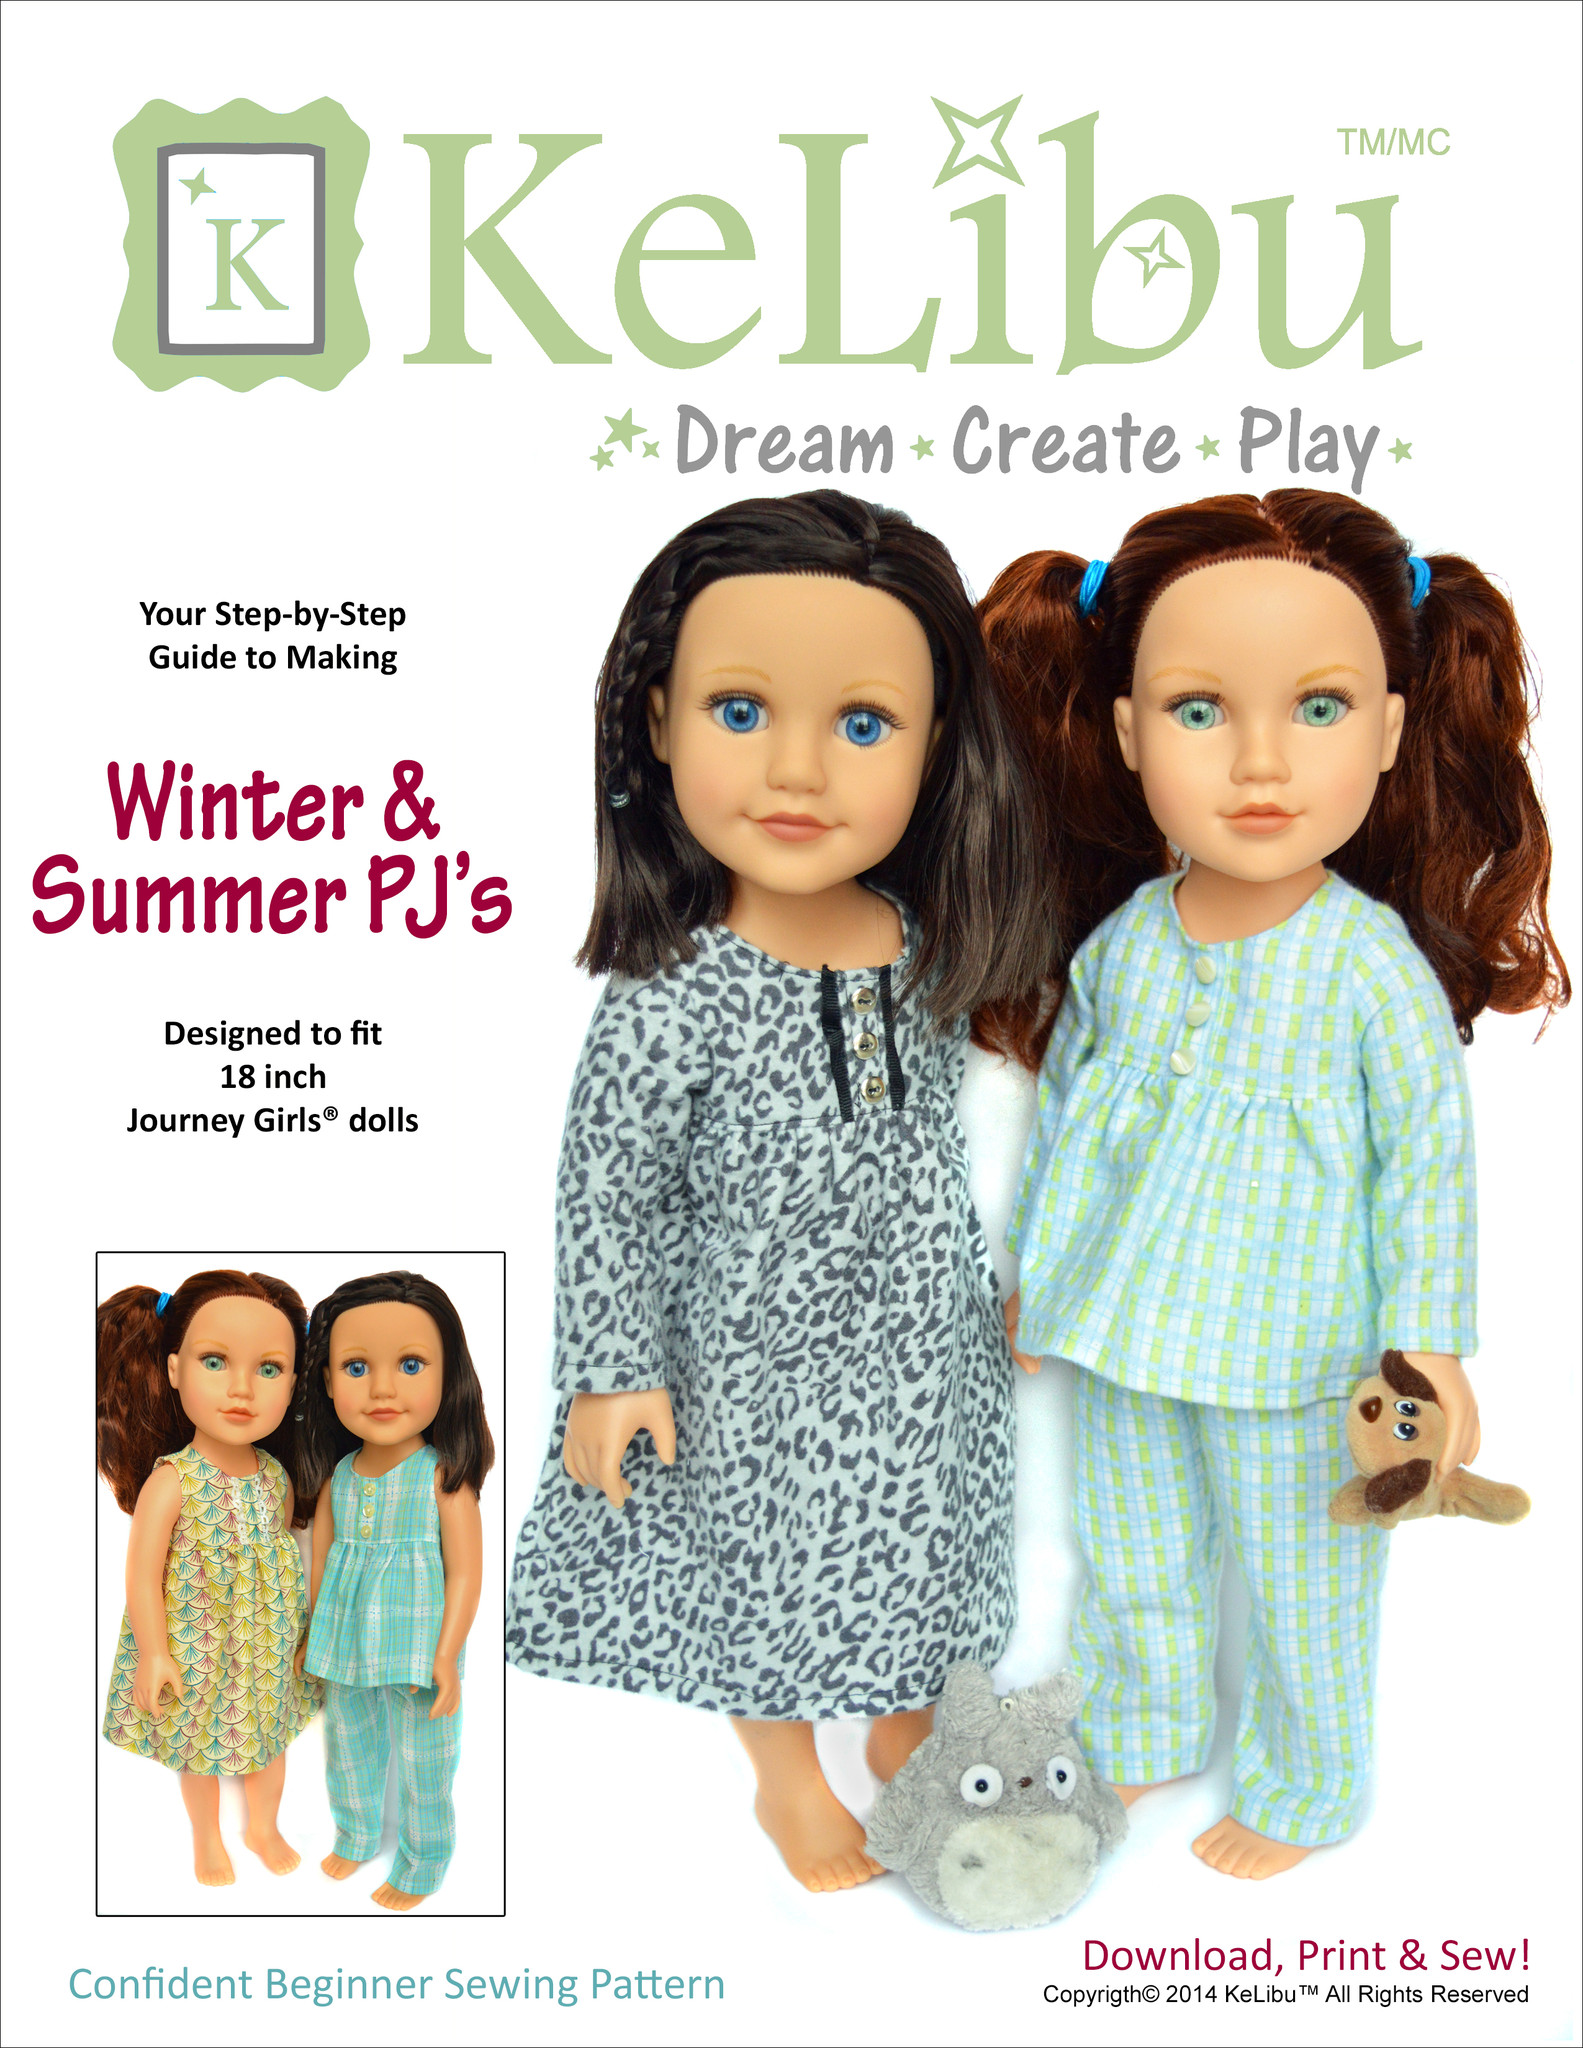 pj's for Journey Girls dolls